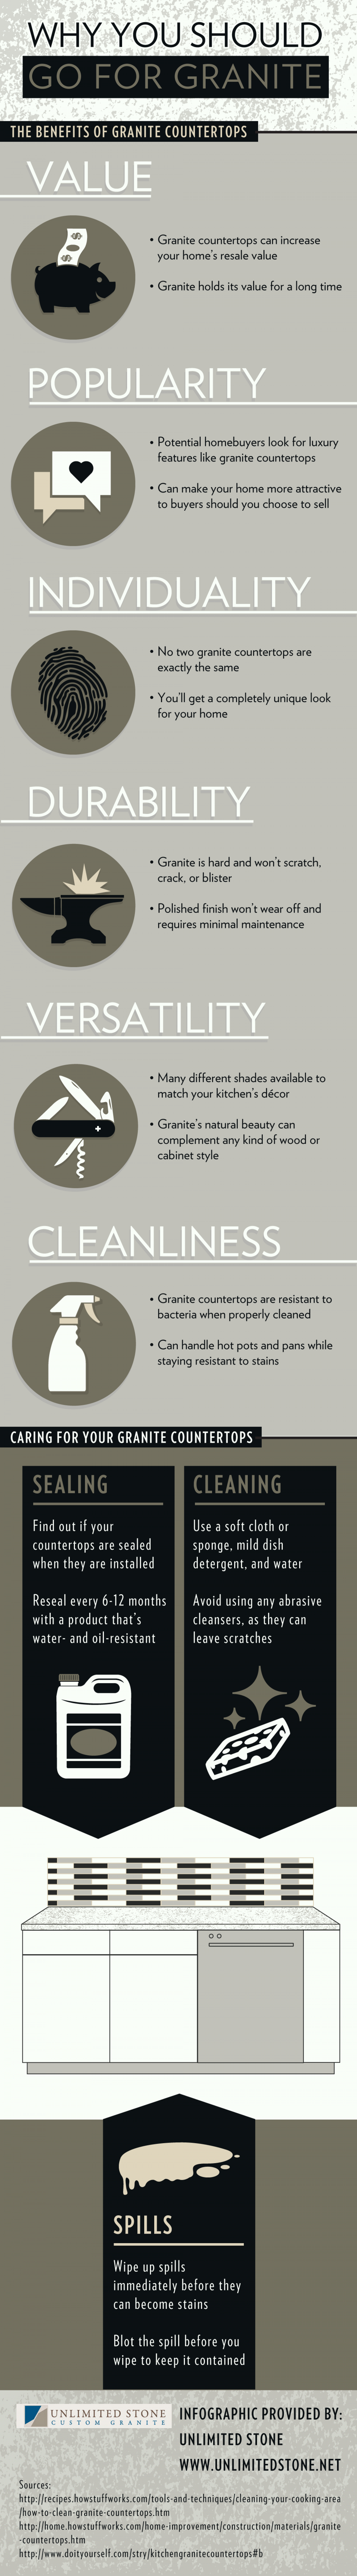 Why You Should Go For Granite Infographic